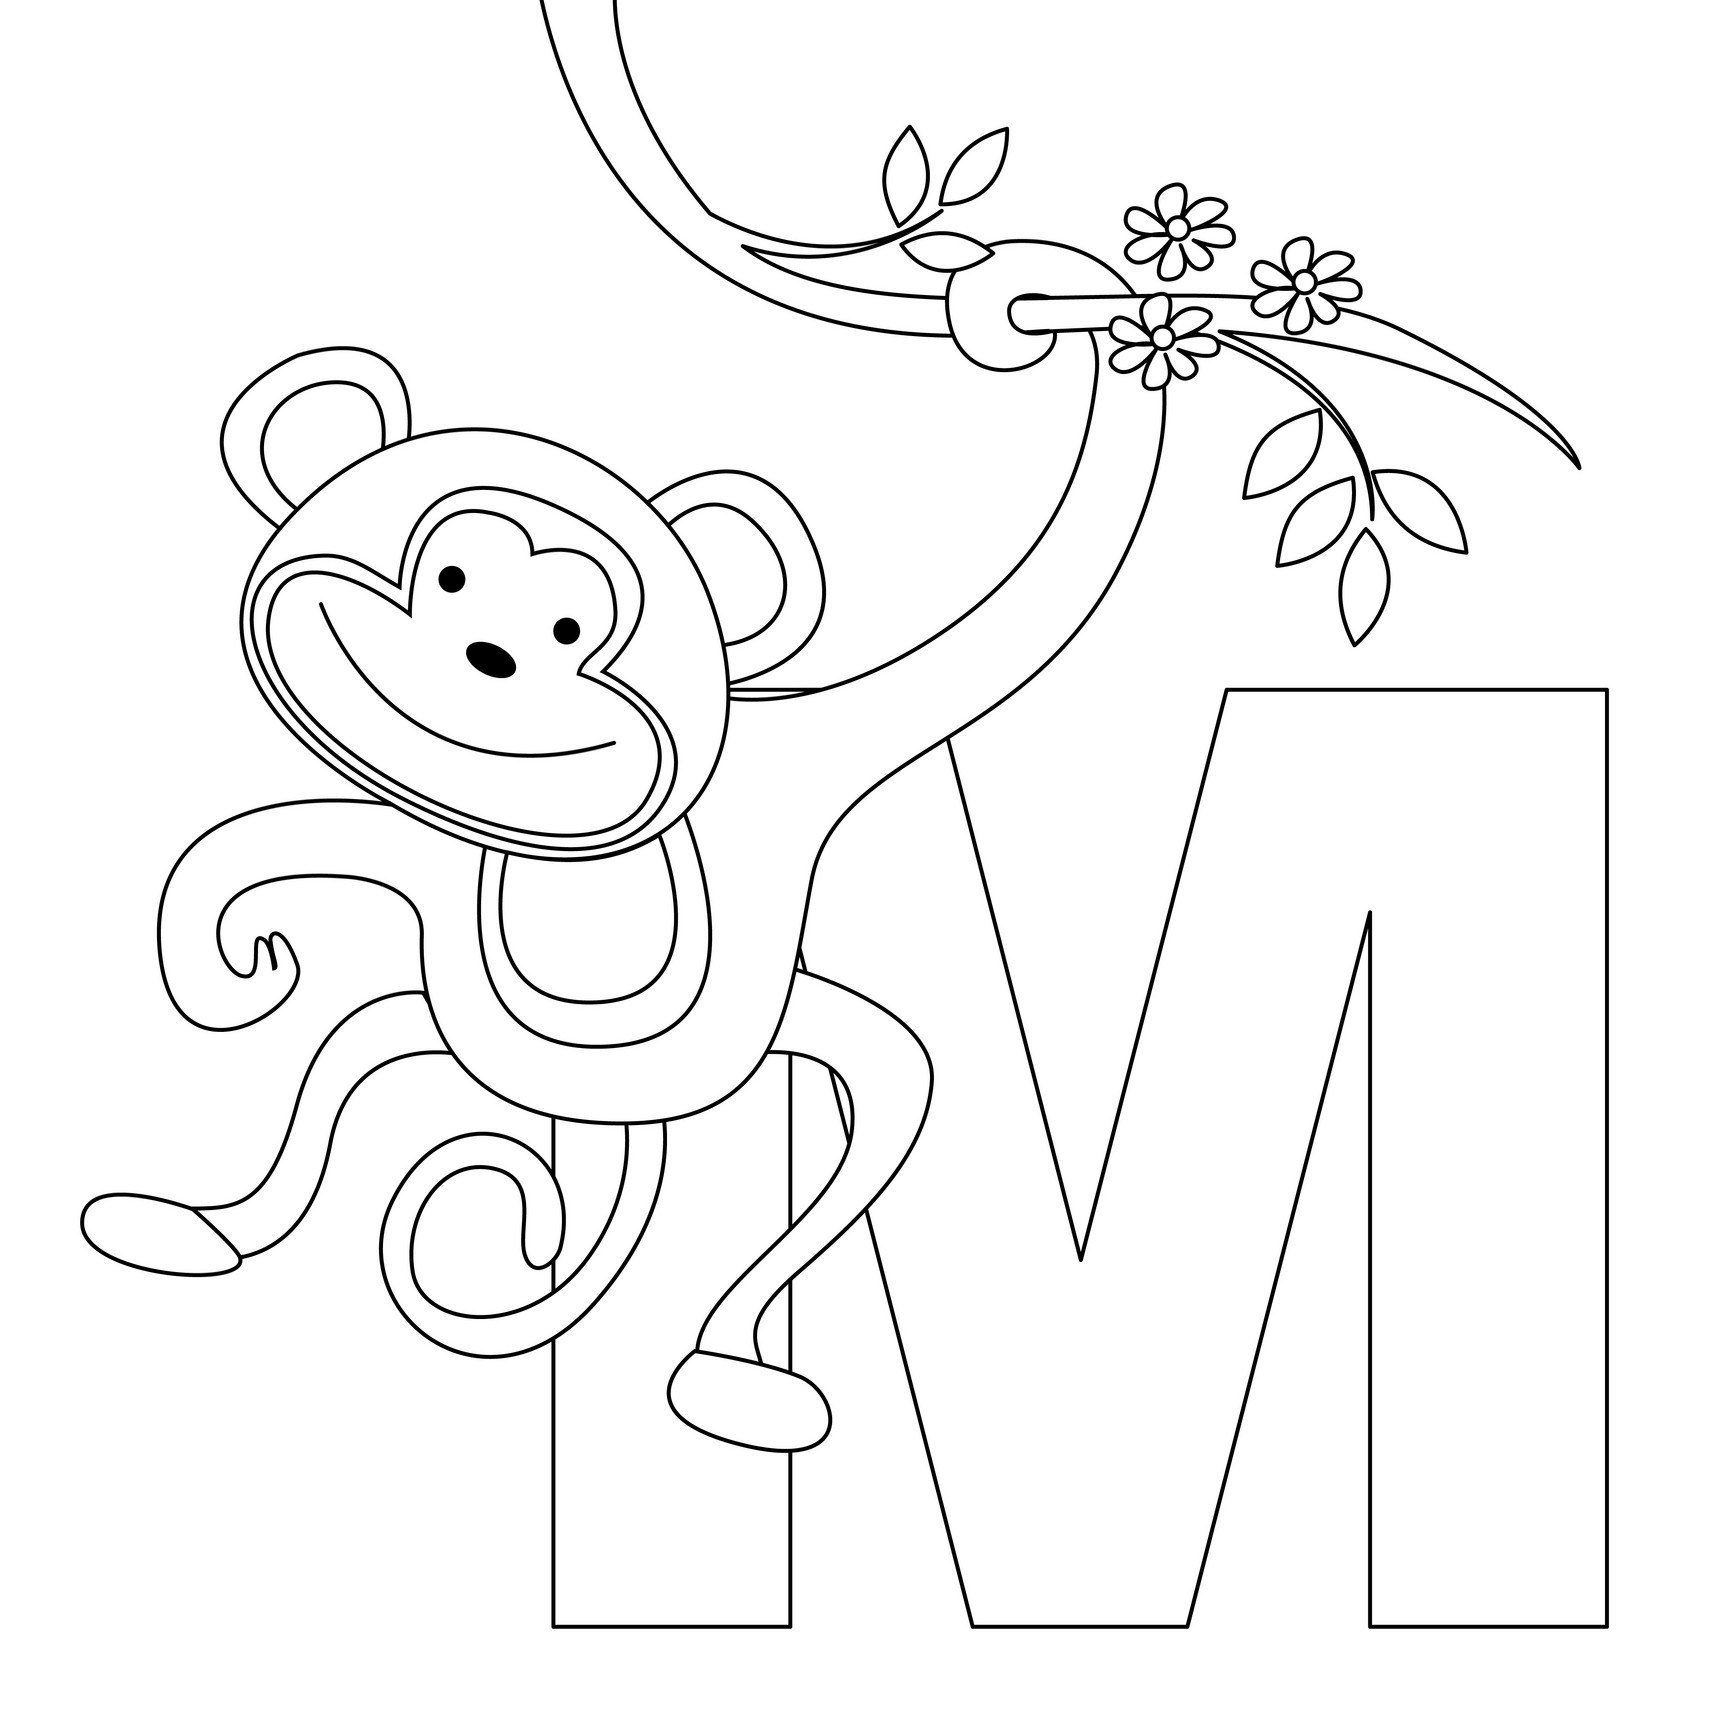 Coloring Pages By Letters Printables : Free printable alphabet coloring pages for kids best